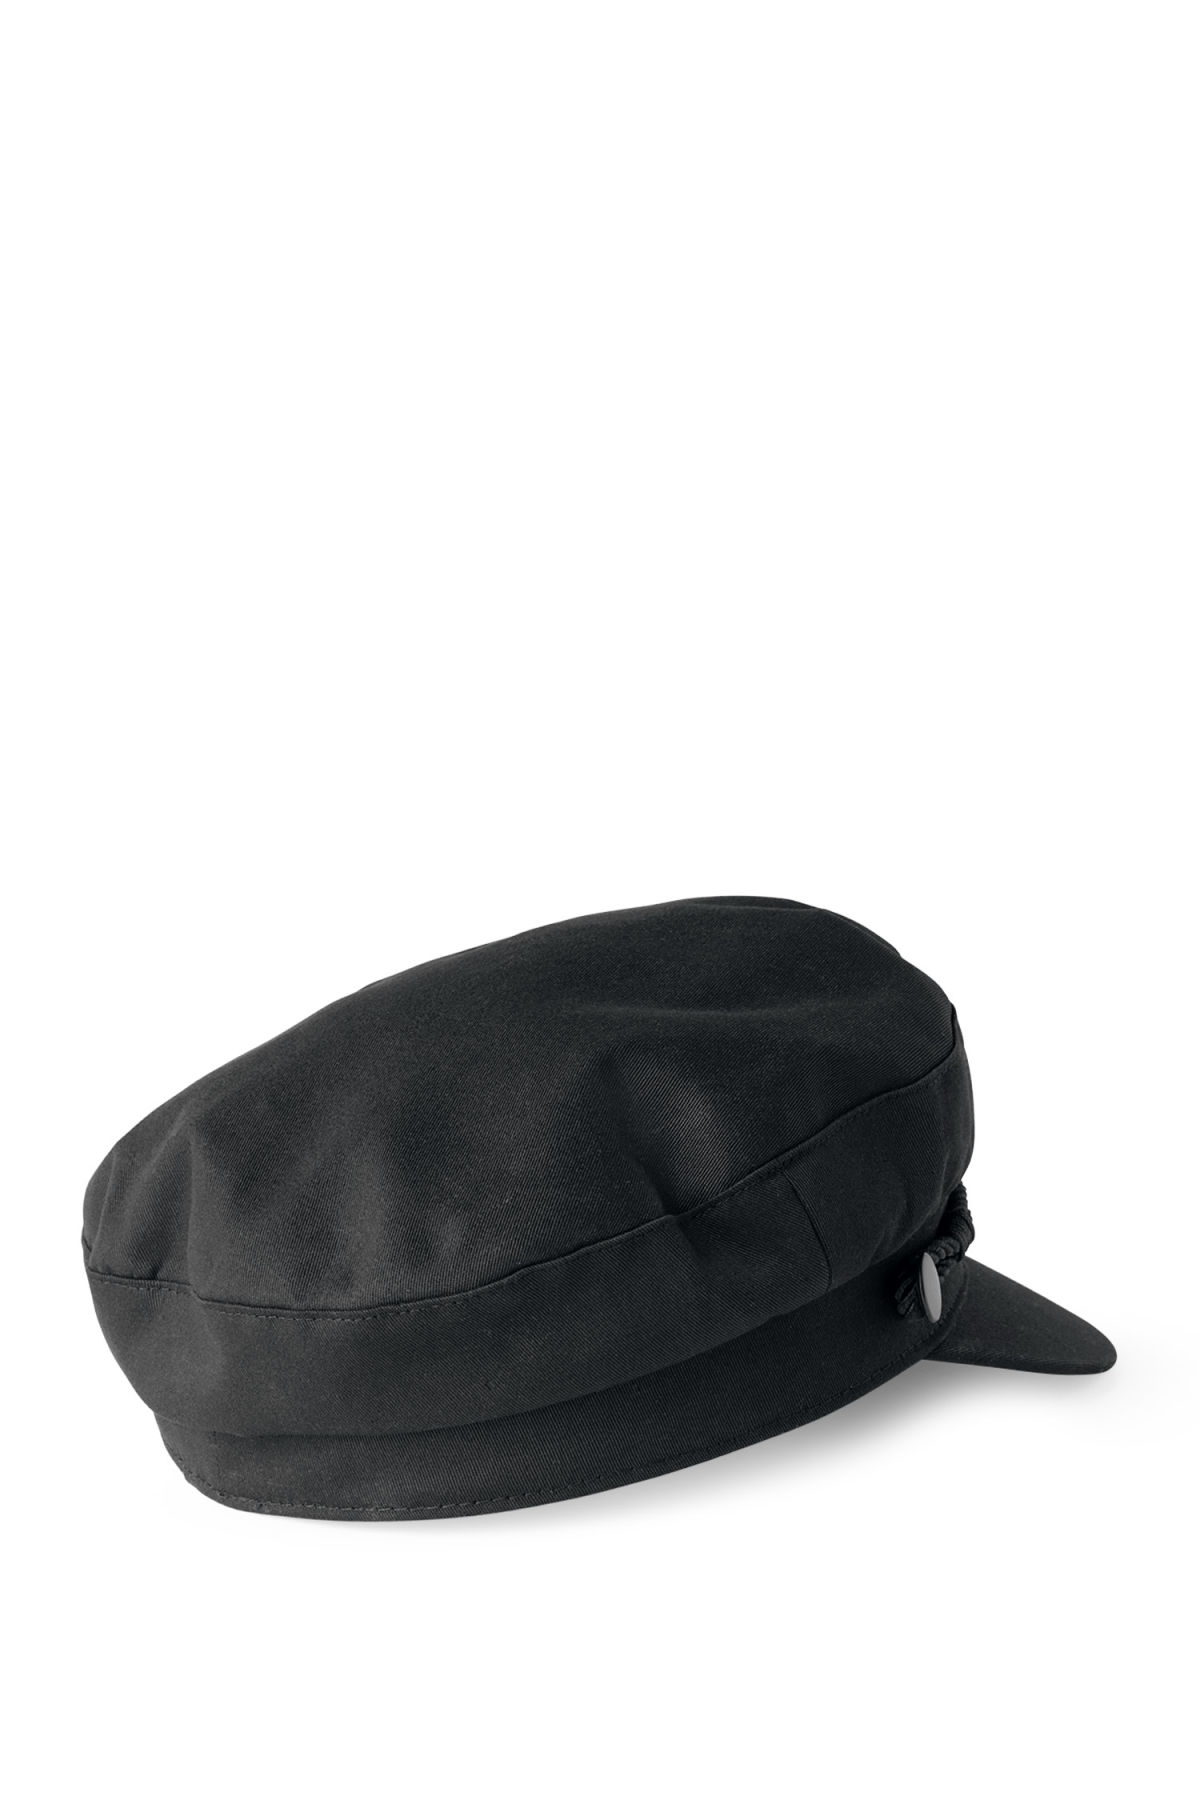 Back image of Weekday sailor cap in black